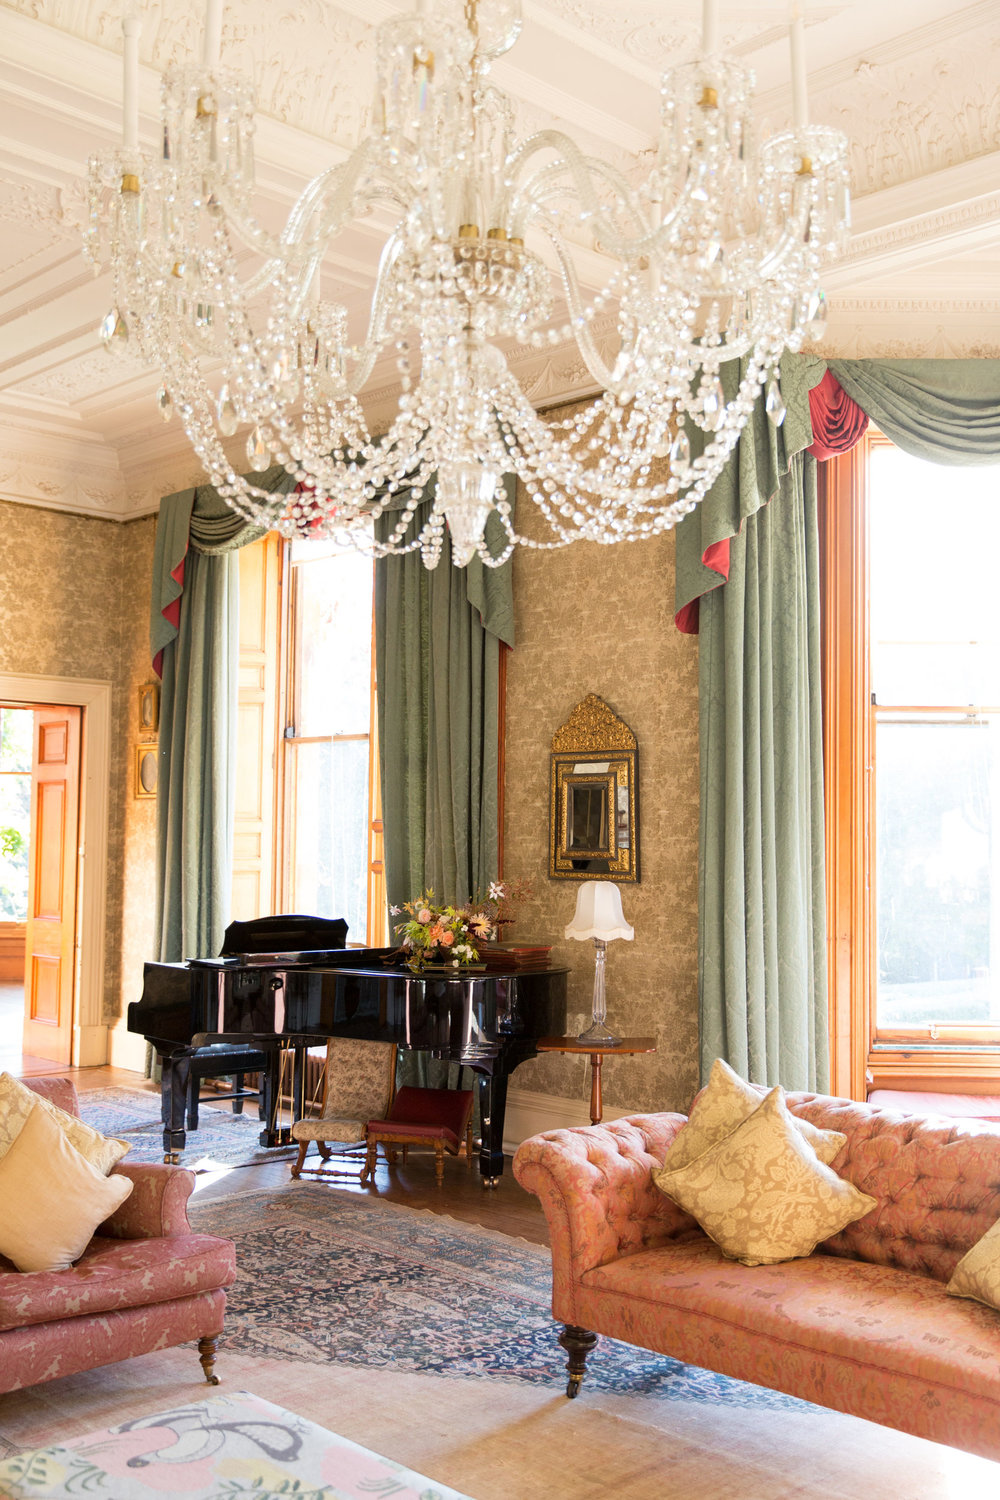 The drawing room. Photo by Helen Warner Photography